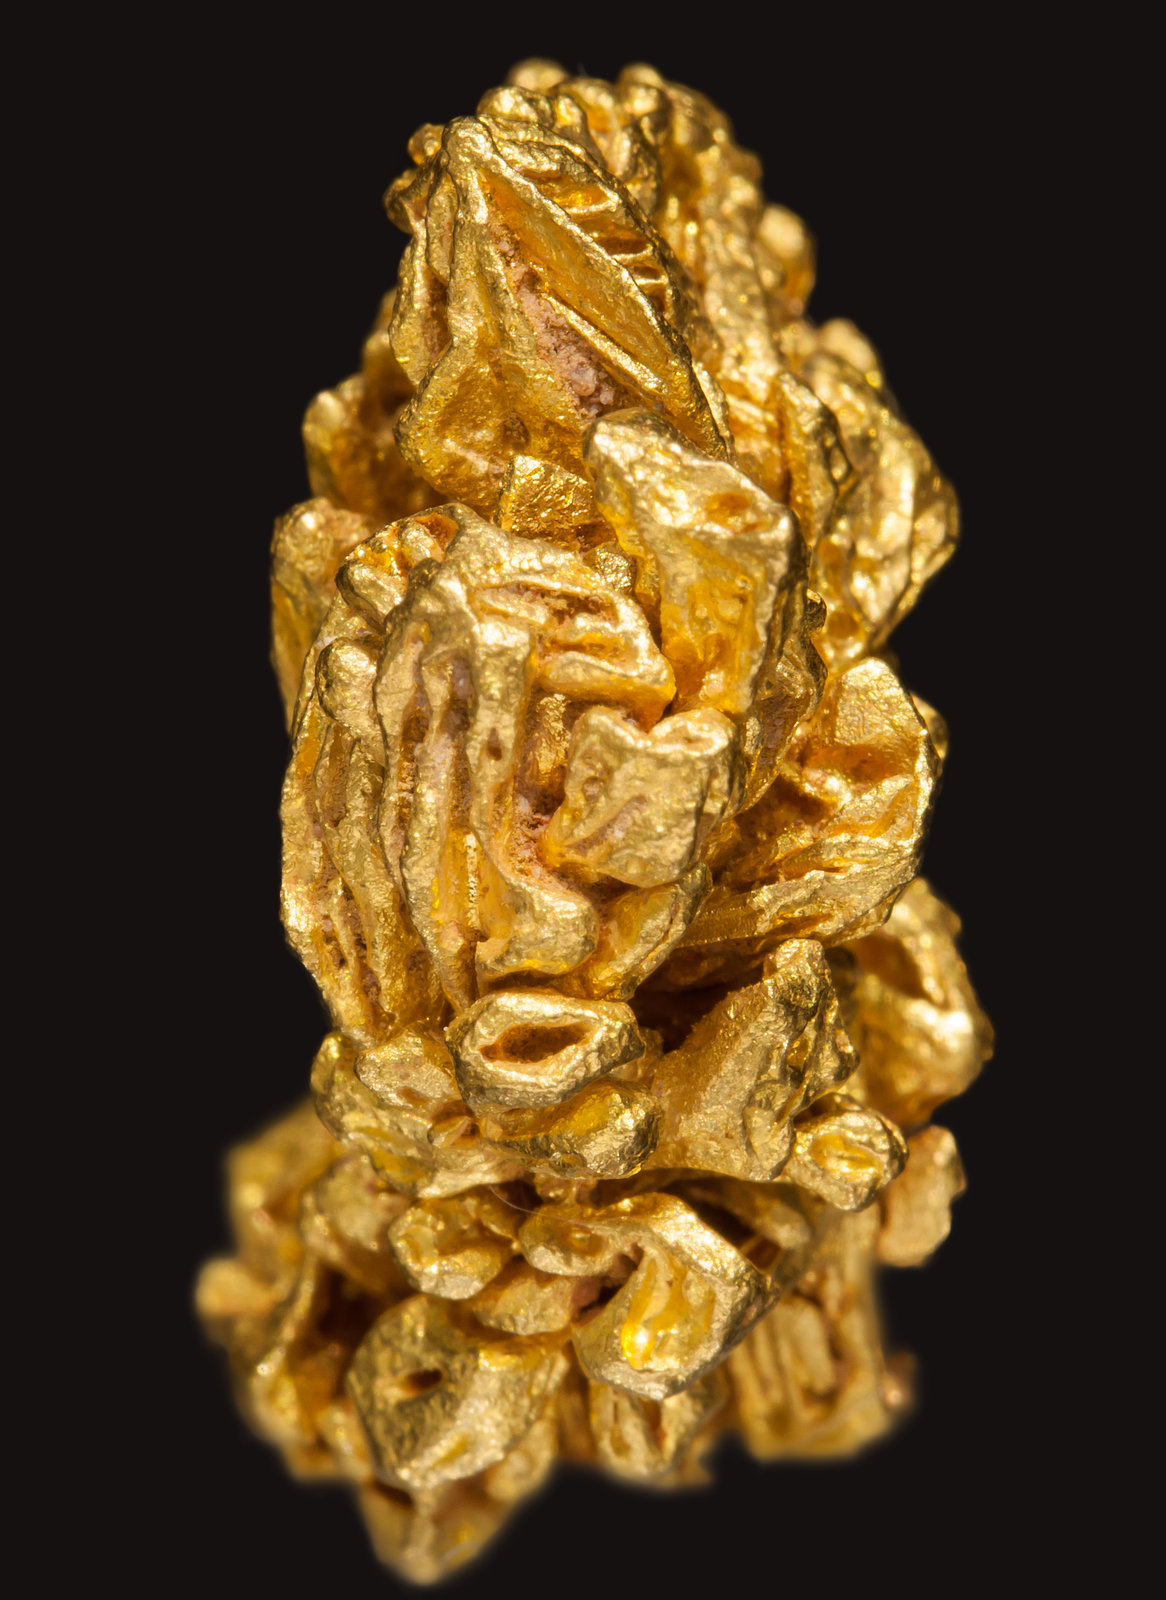 specimens/s_imagesAE5/Gold-EE97AE5s.jpg